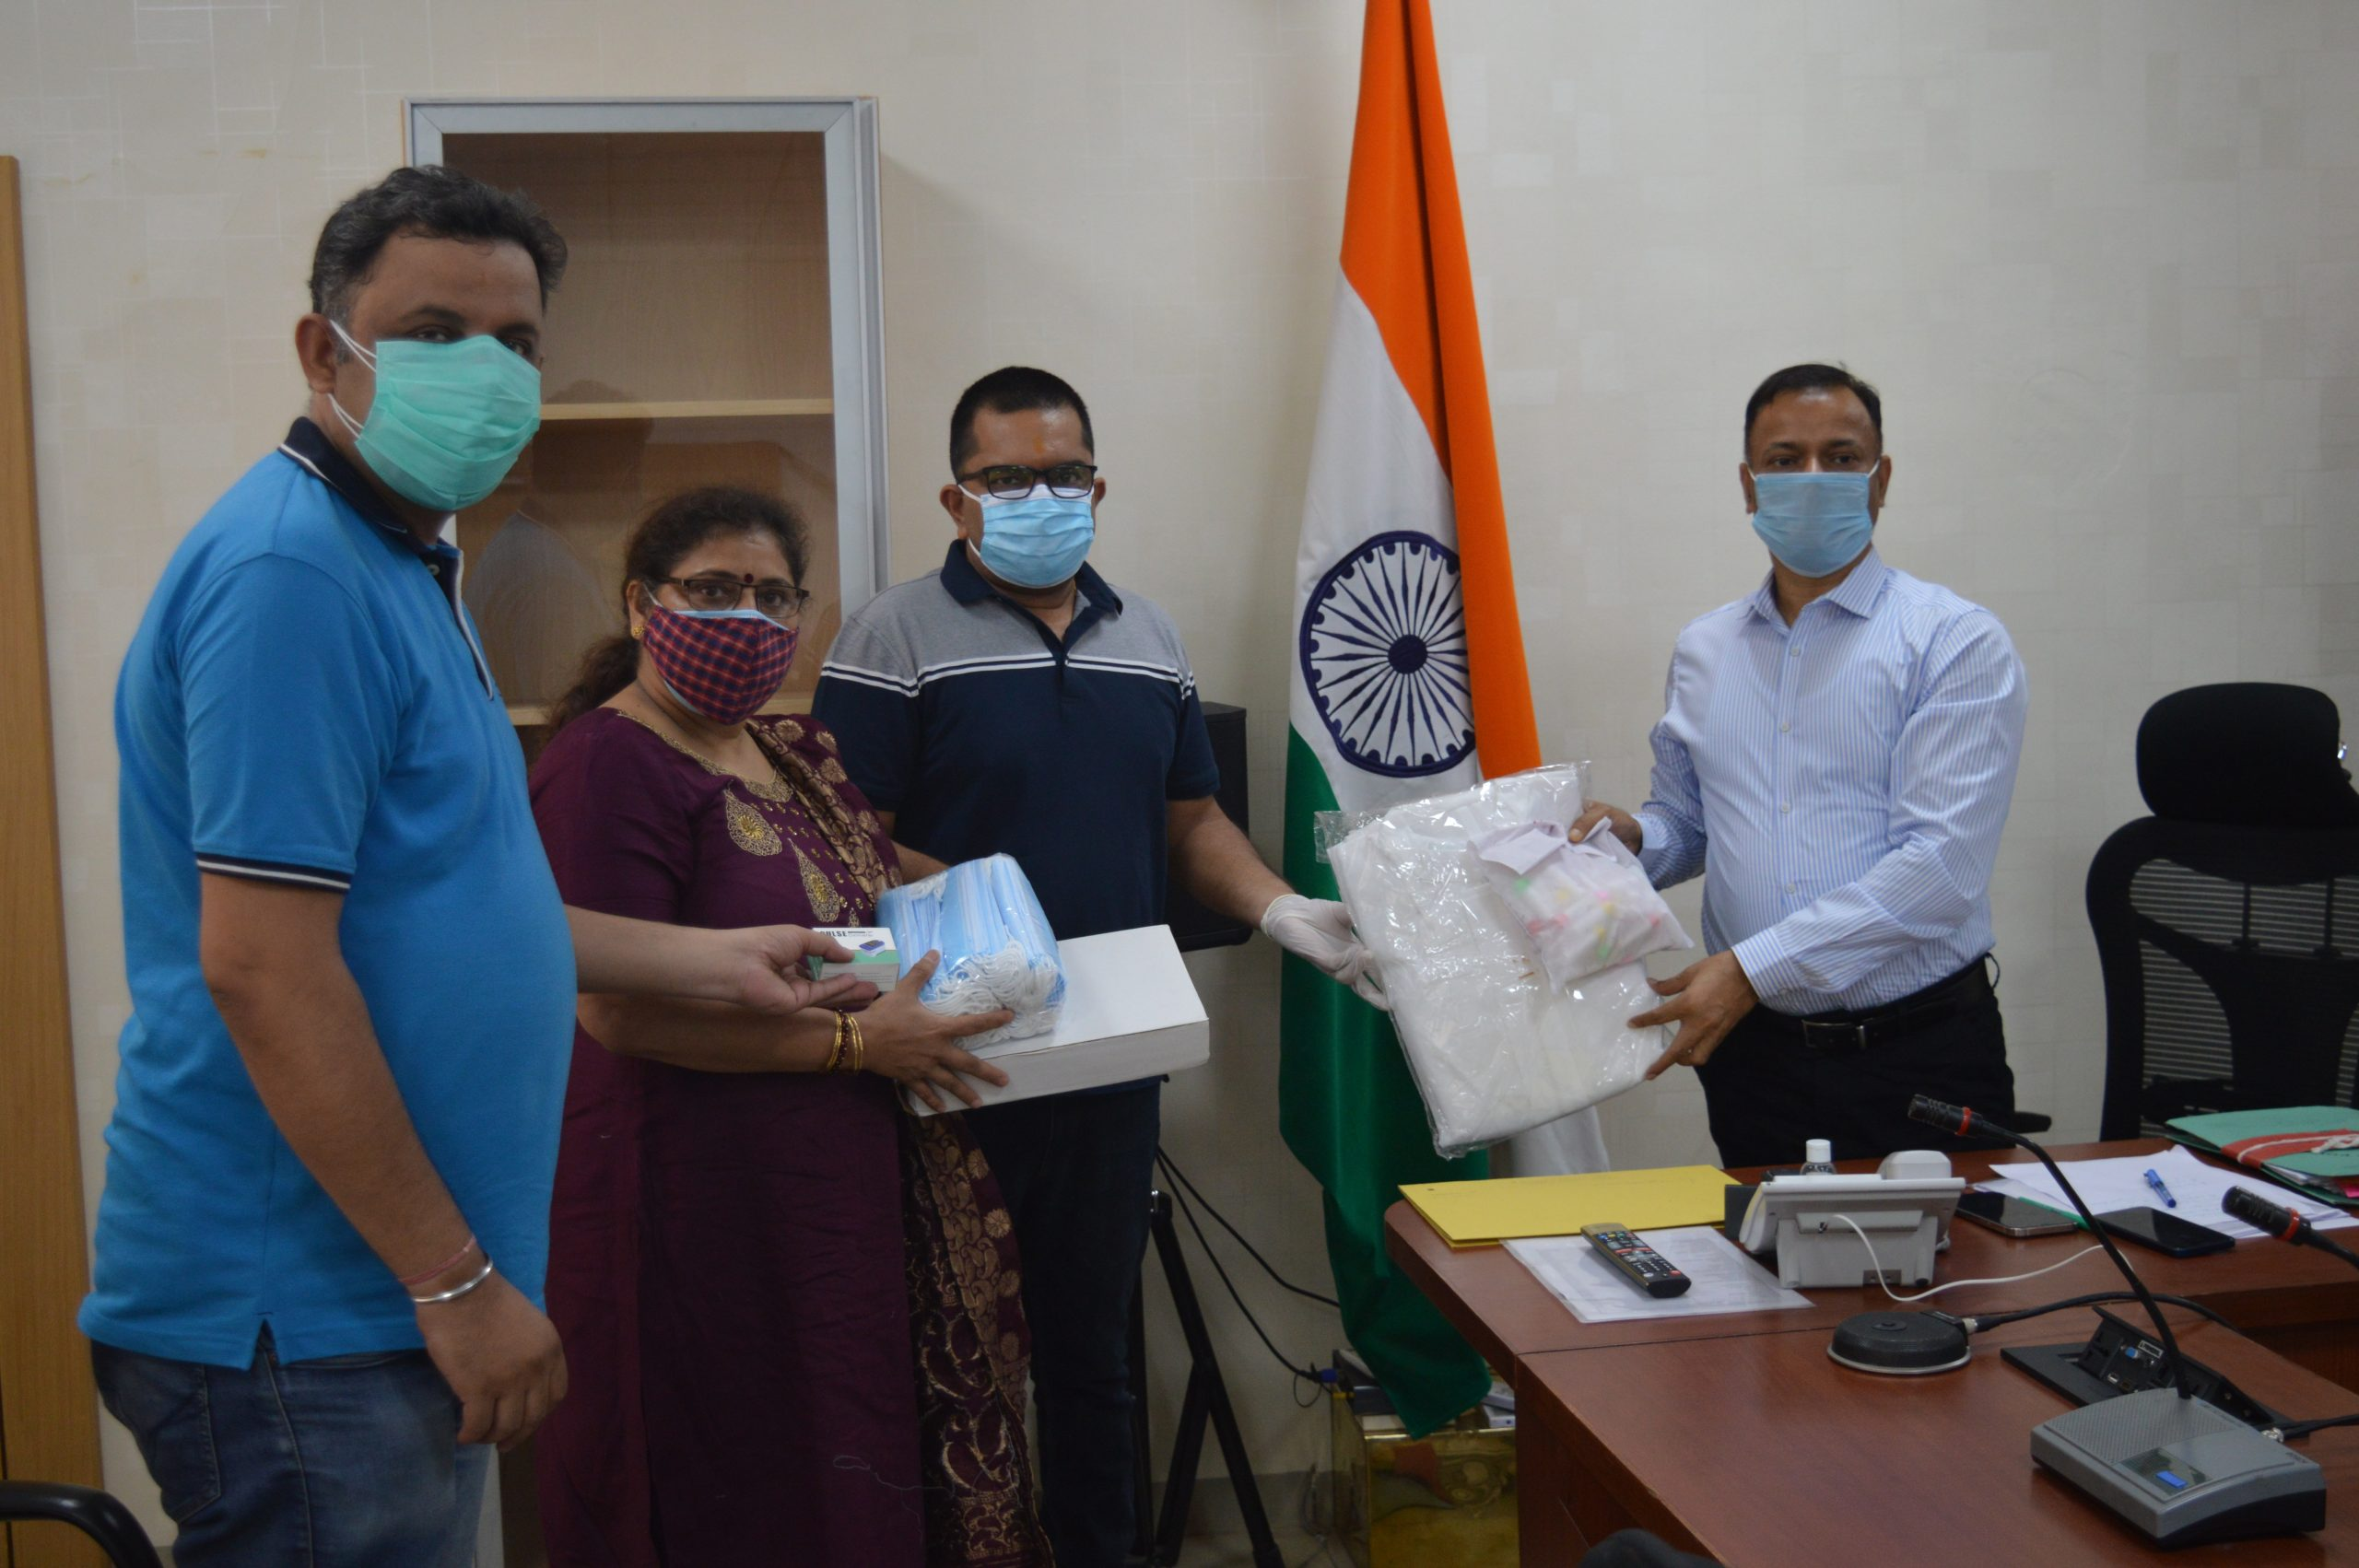 PPE Kit Distribution in Faridabad 2